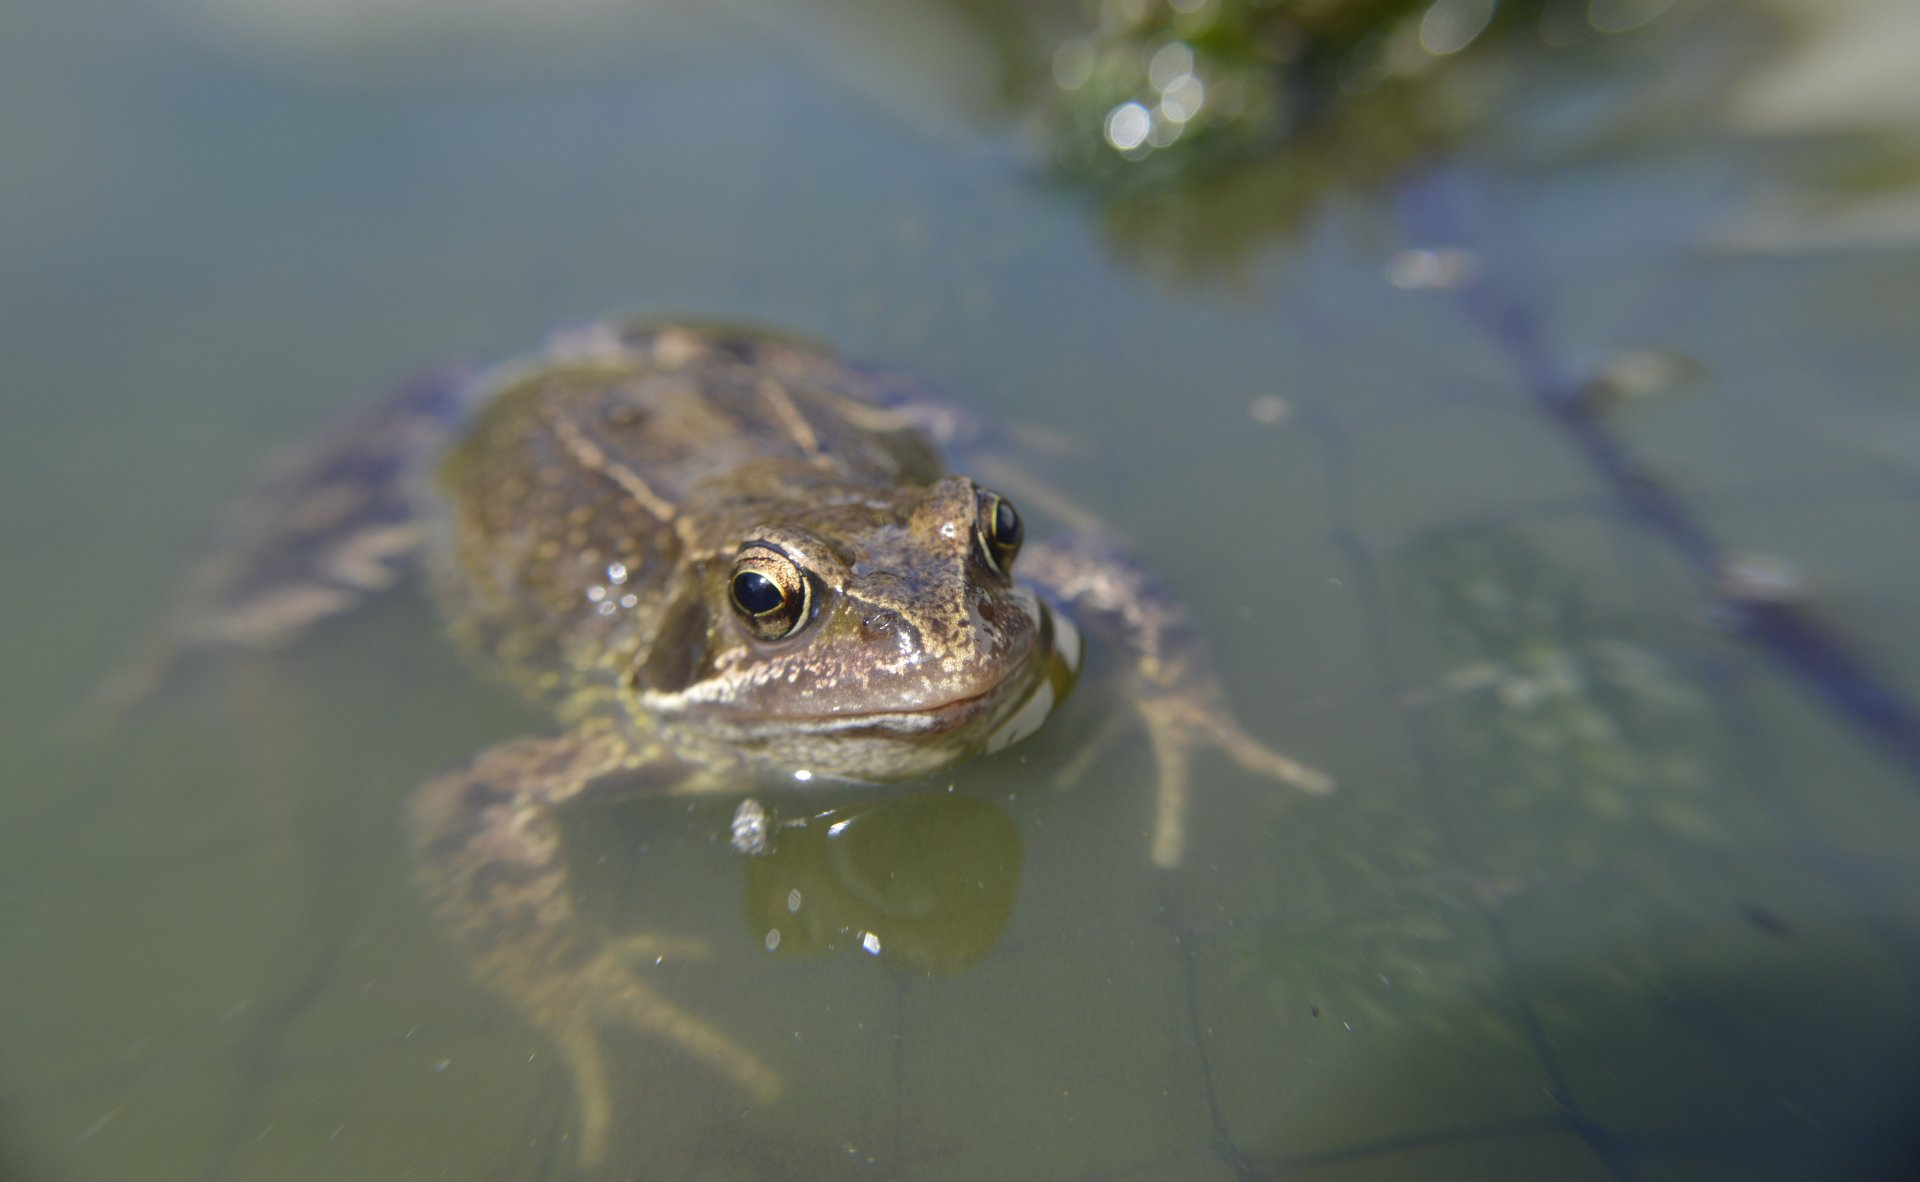 Frog in Pond.